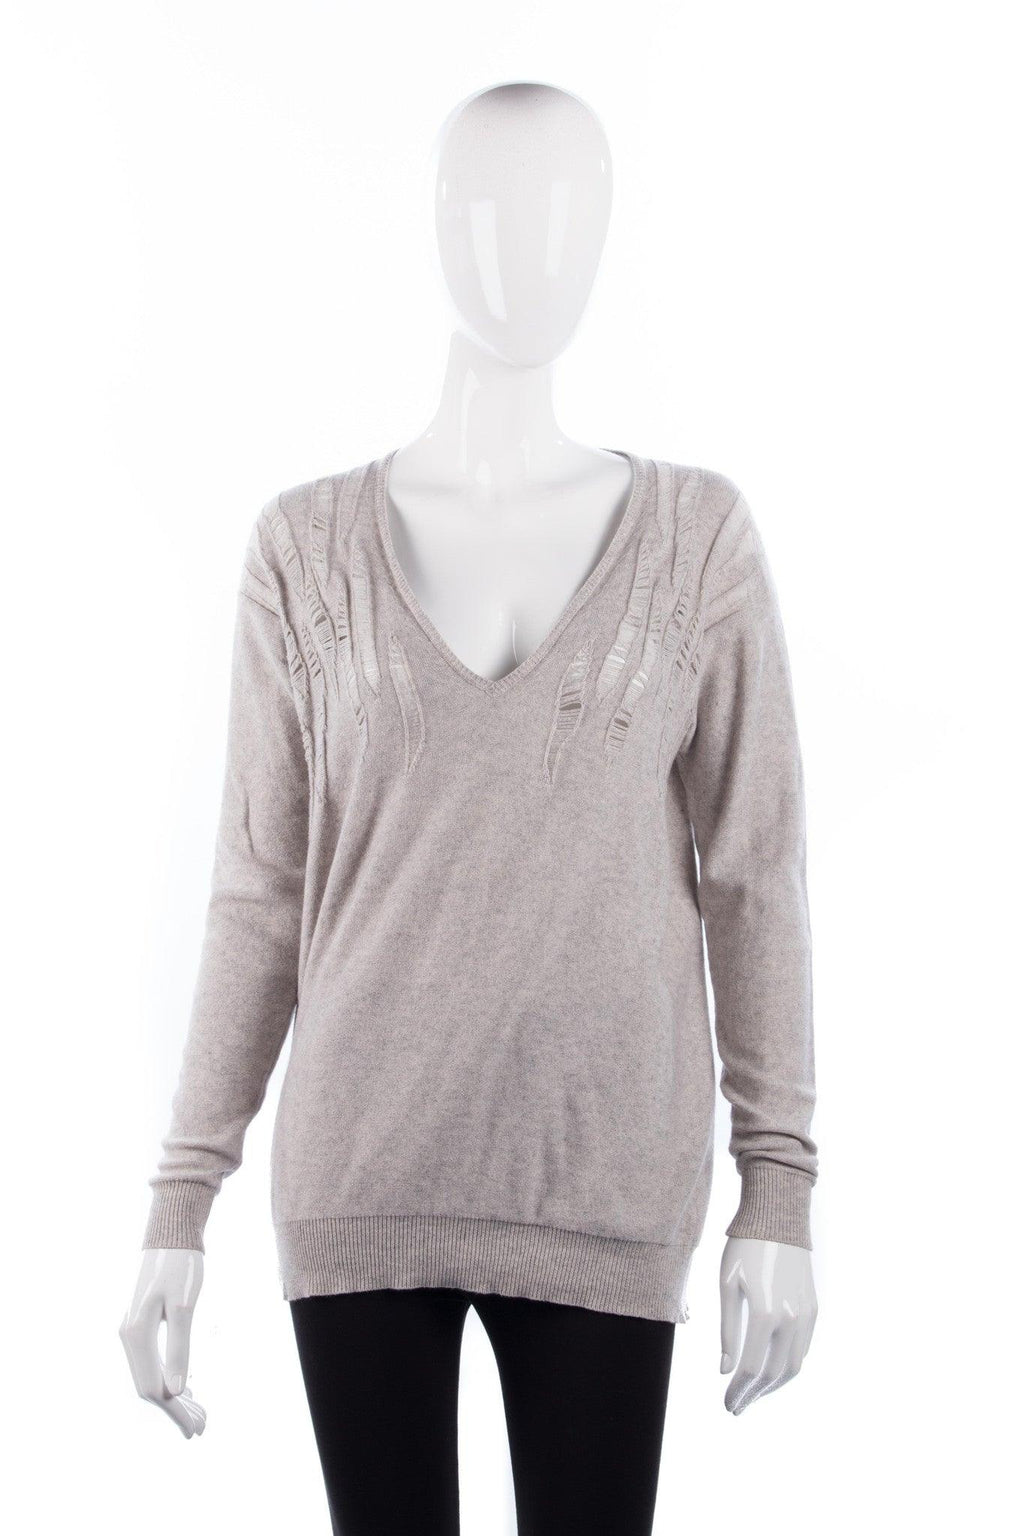 Stella McCartney Jumper Cotton Cashmere and Silk Mix Grey Size 38 (UK8)